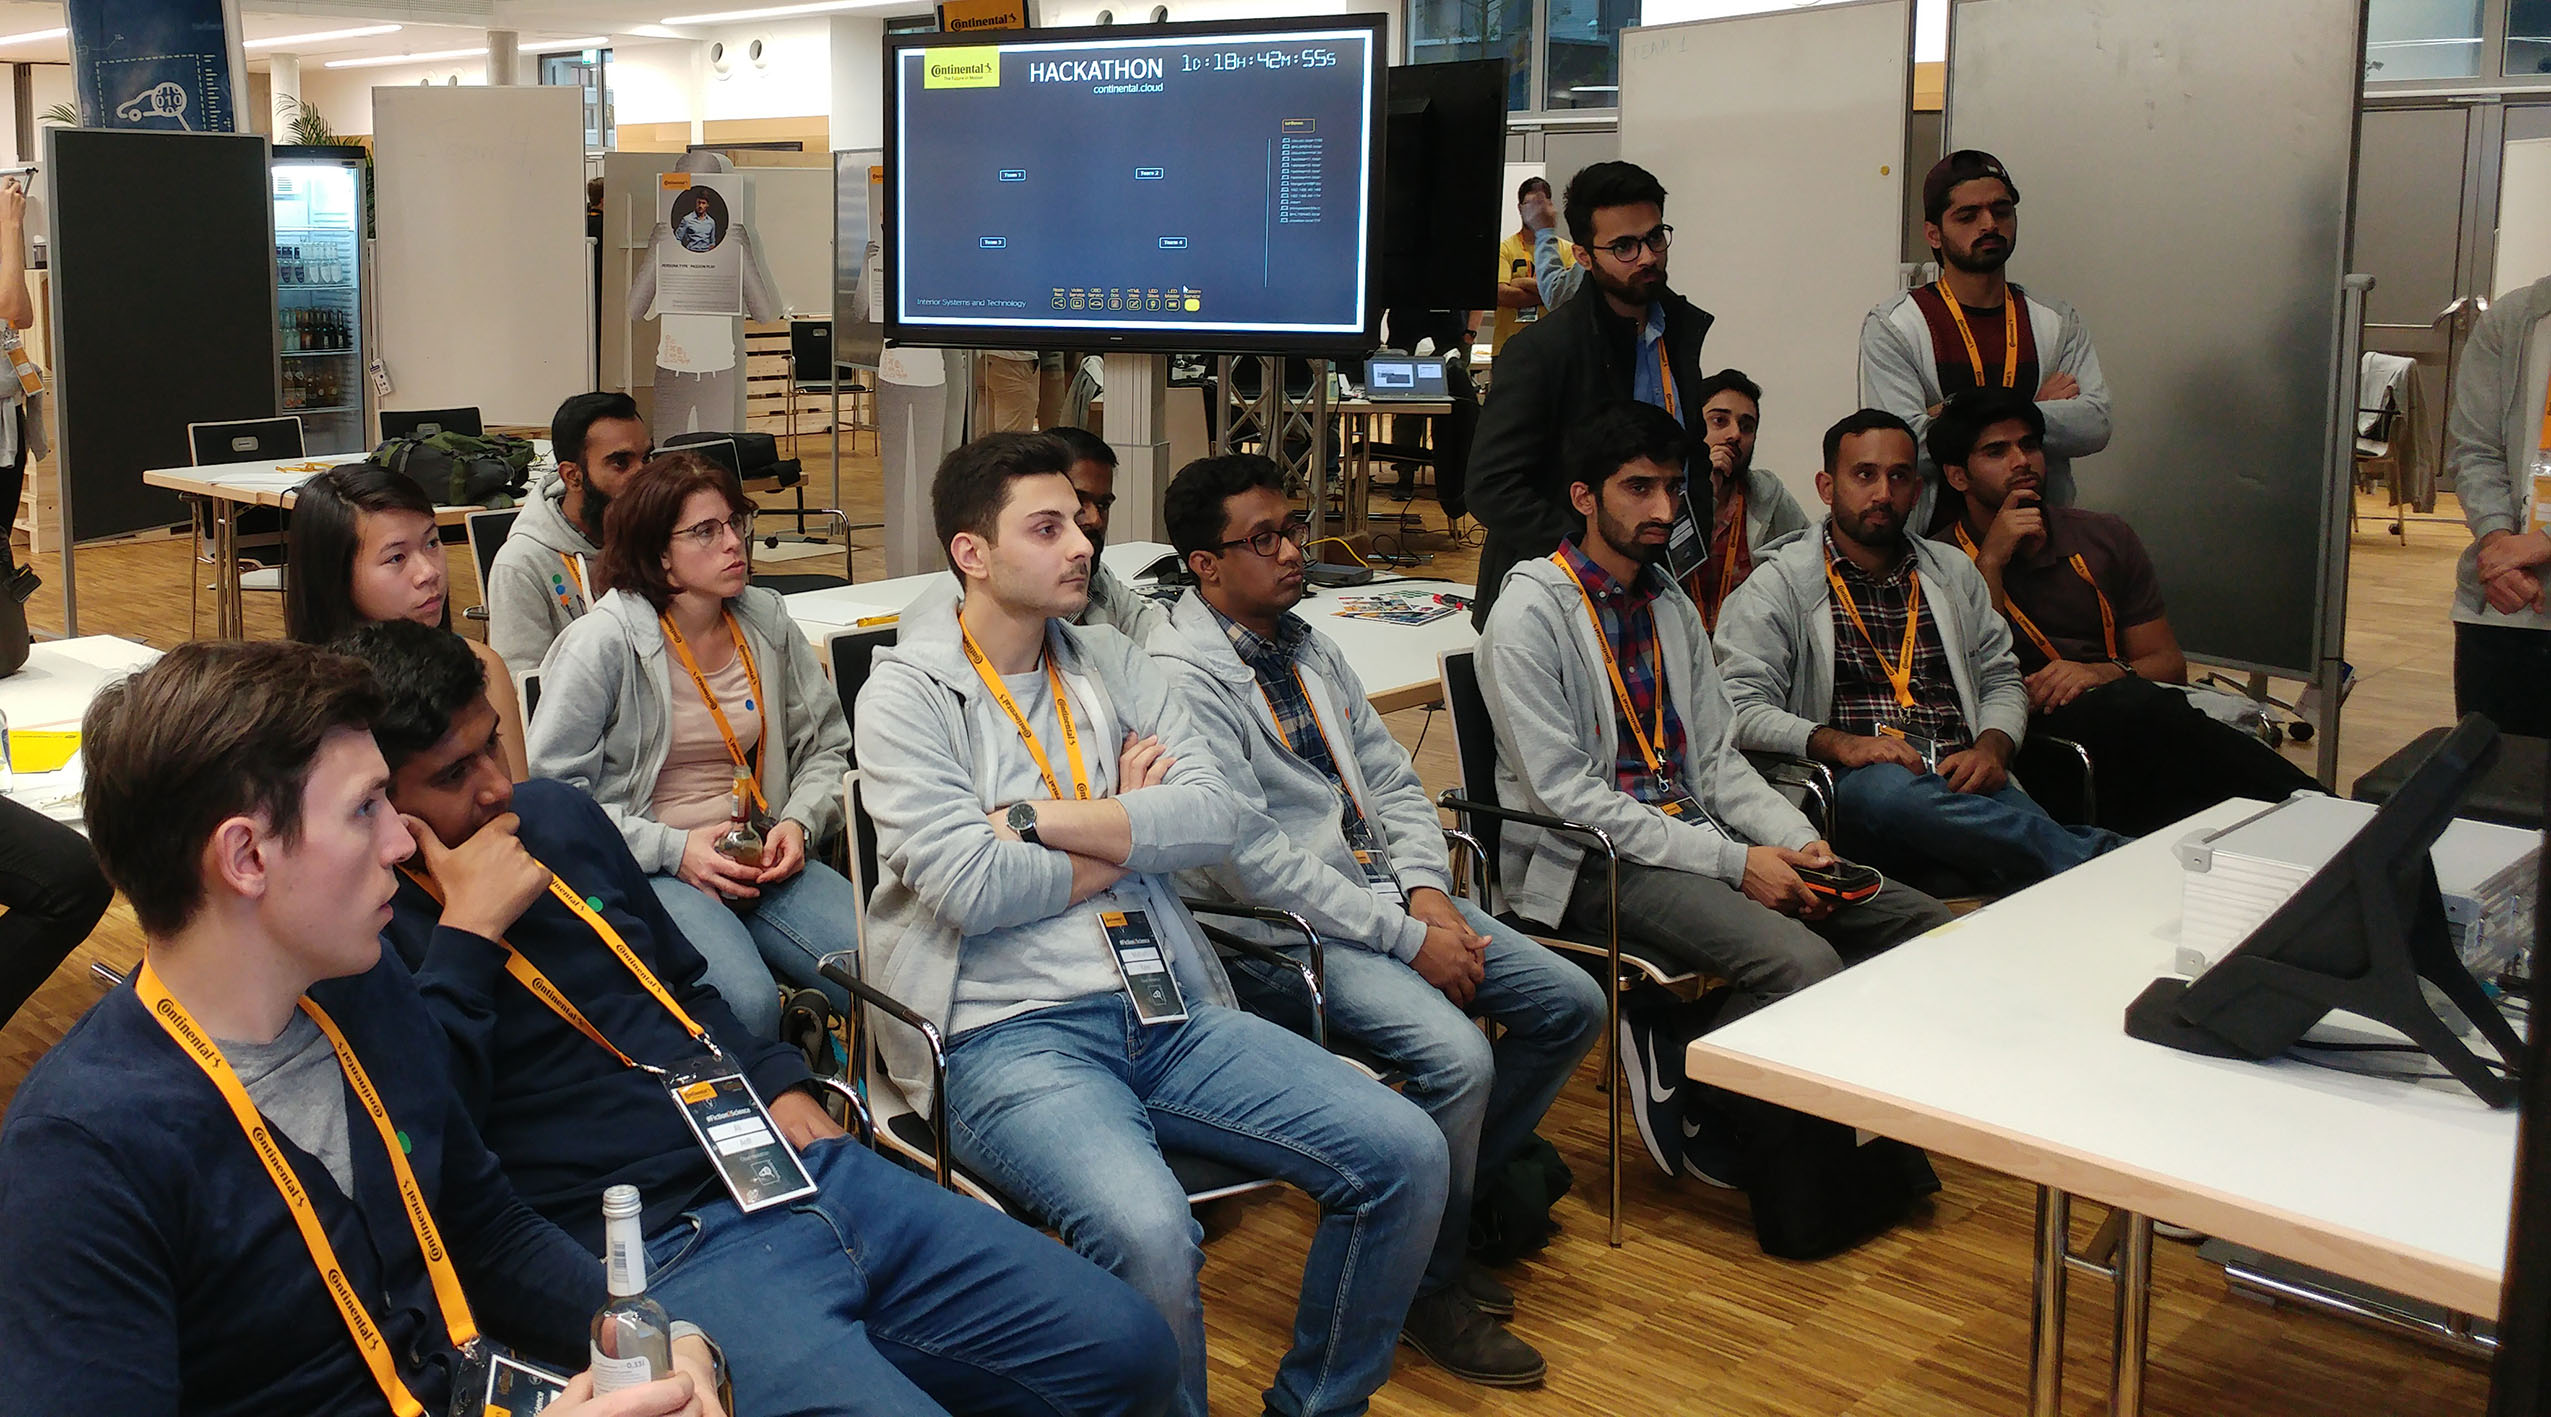 photo of the hackathon participants, sitting and listening to the initial instructions